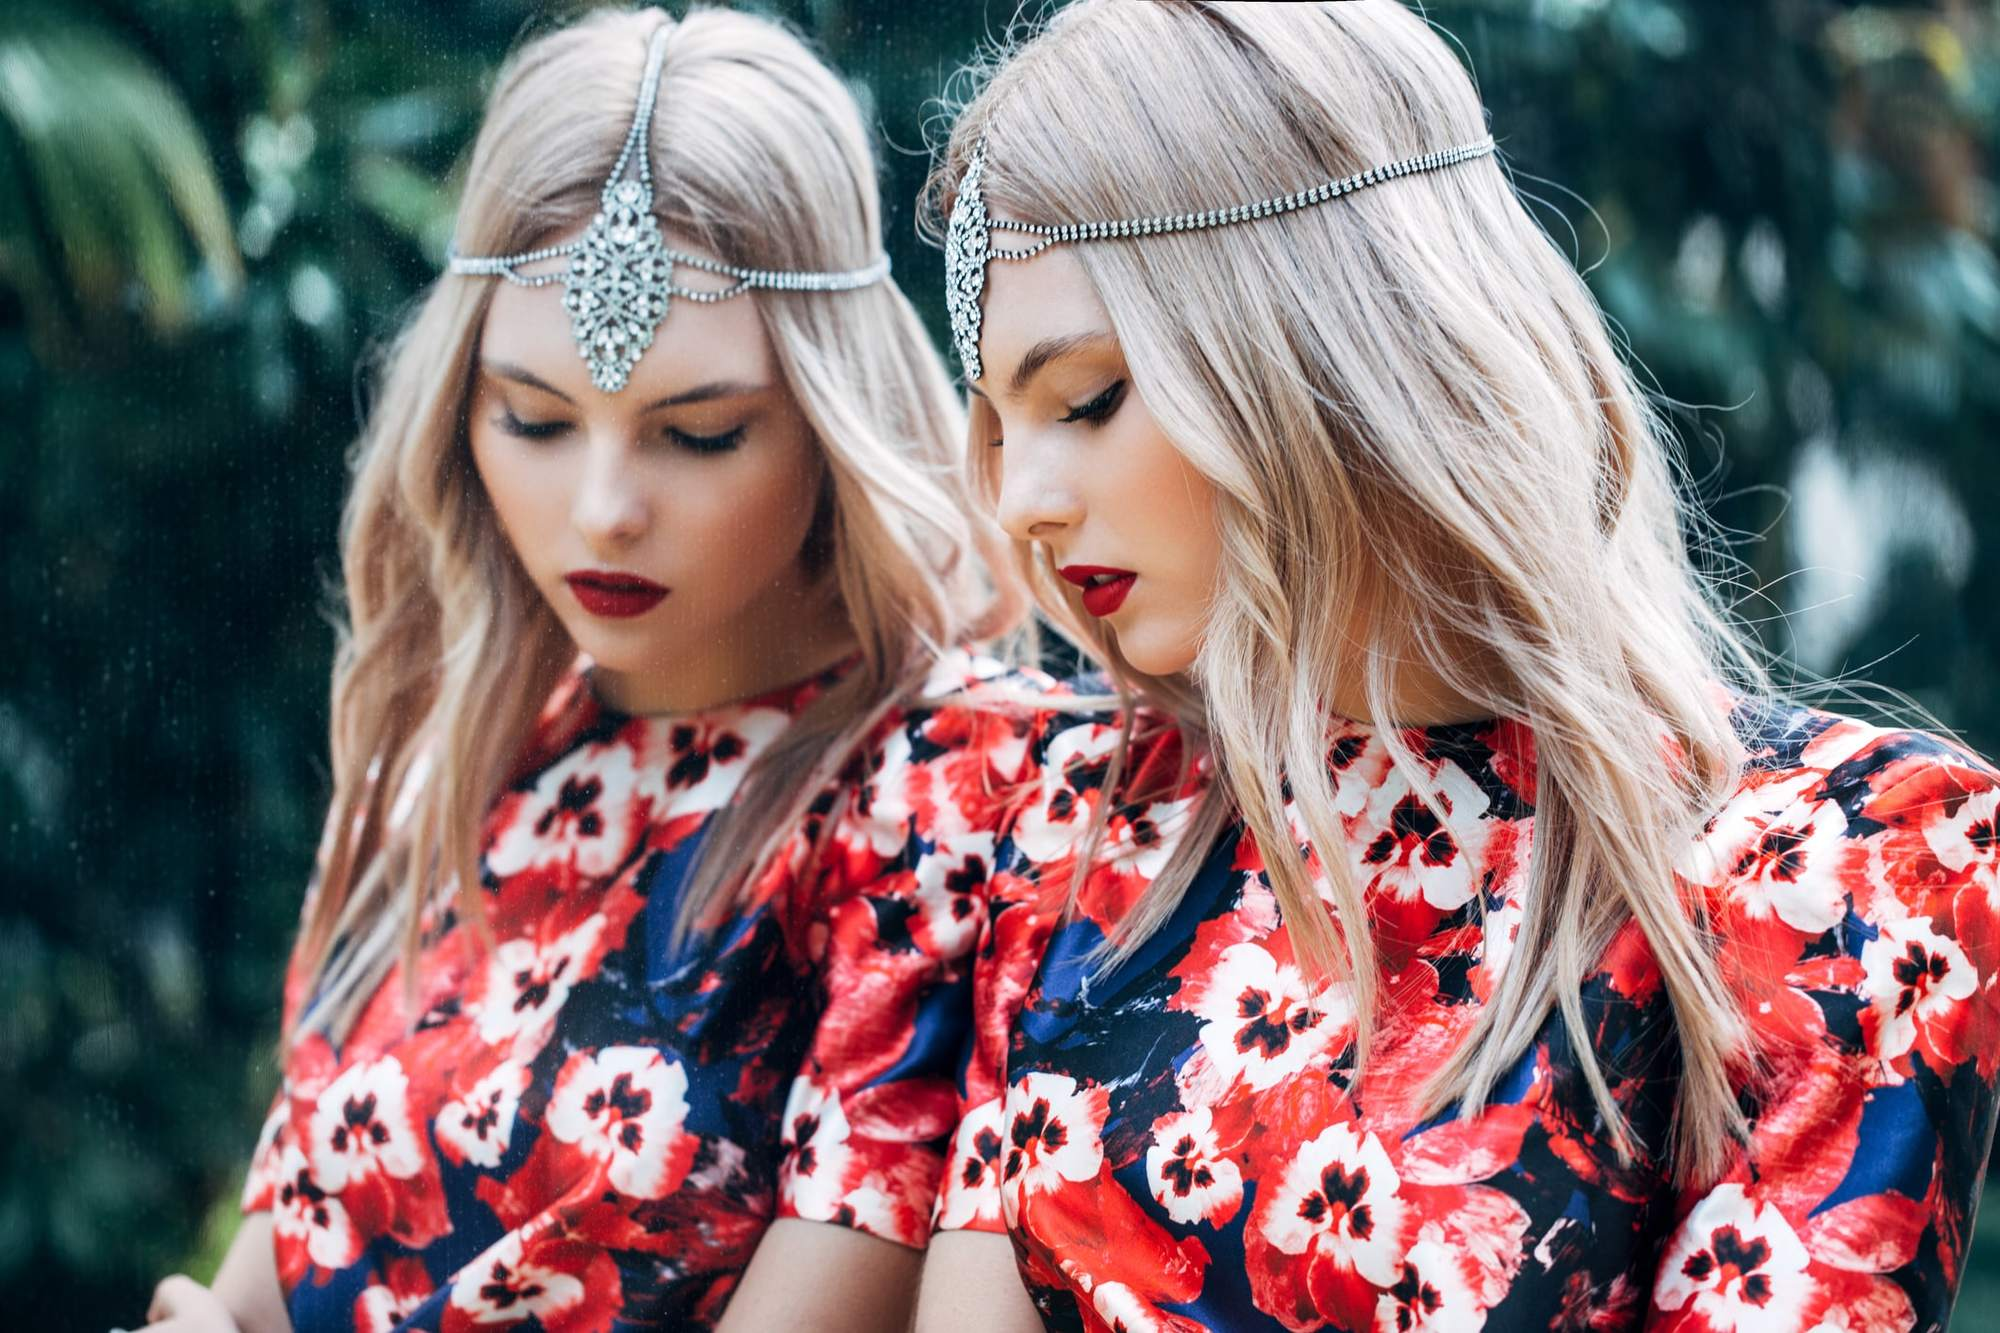 hairstyles with tiara silver headpiece loose blonde curls